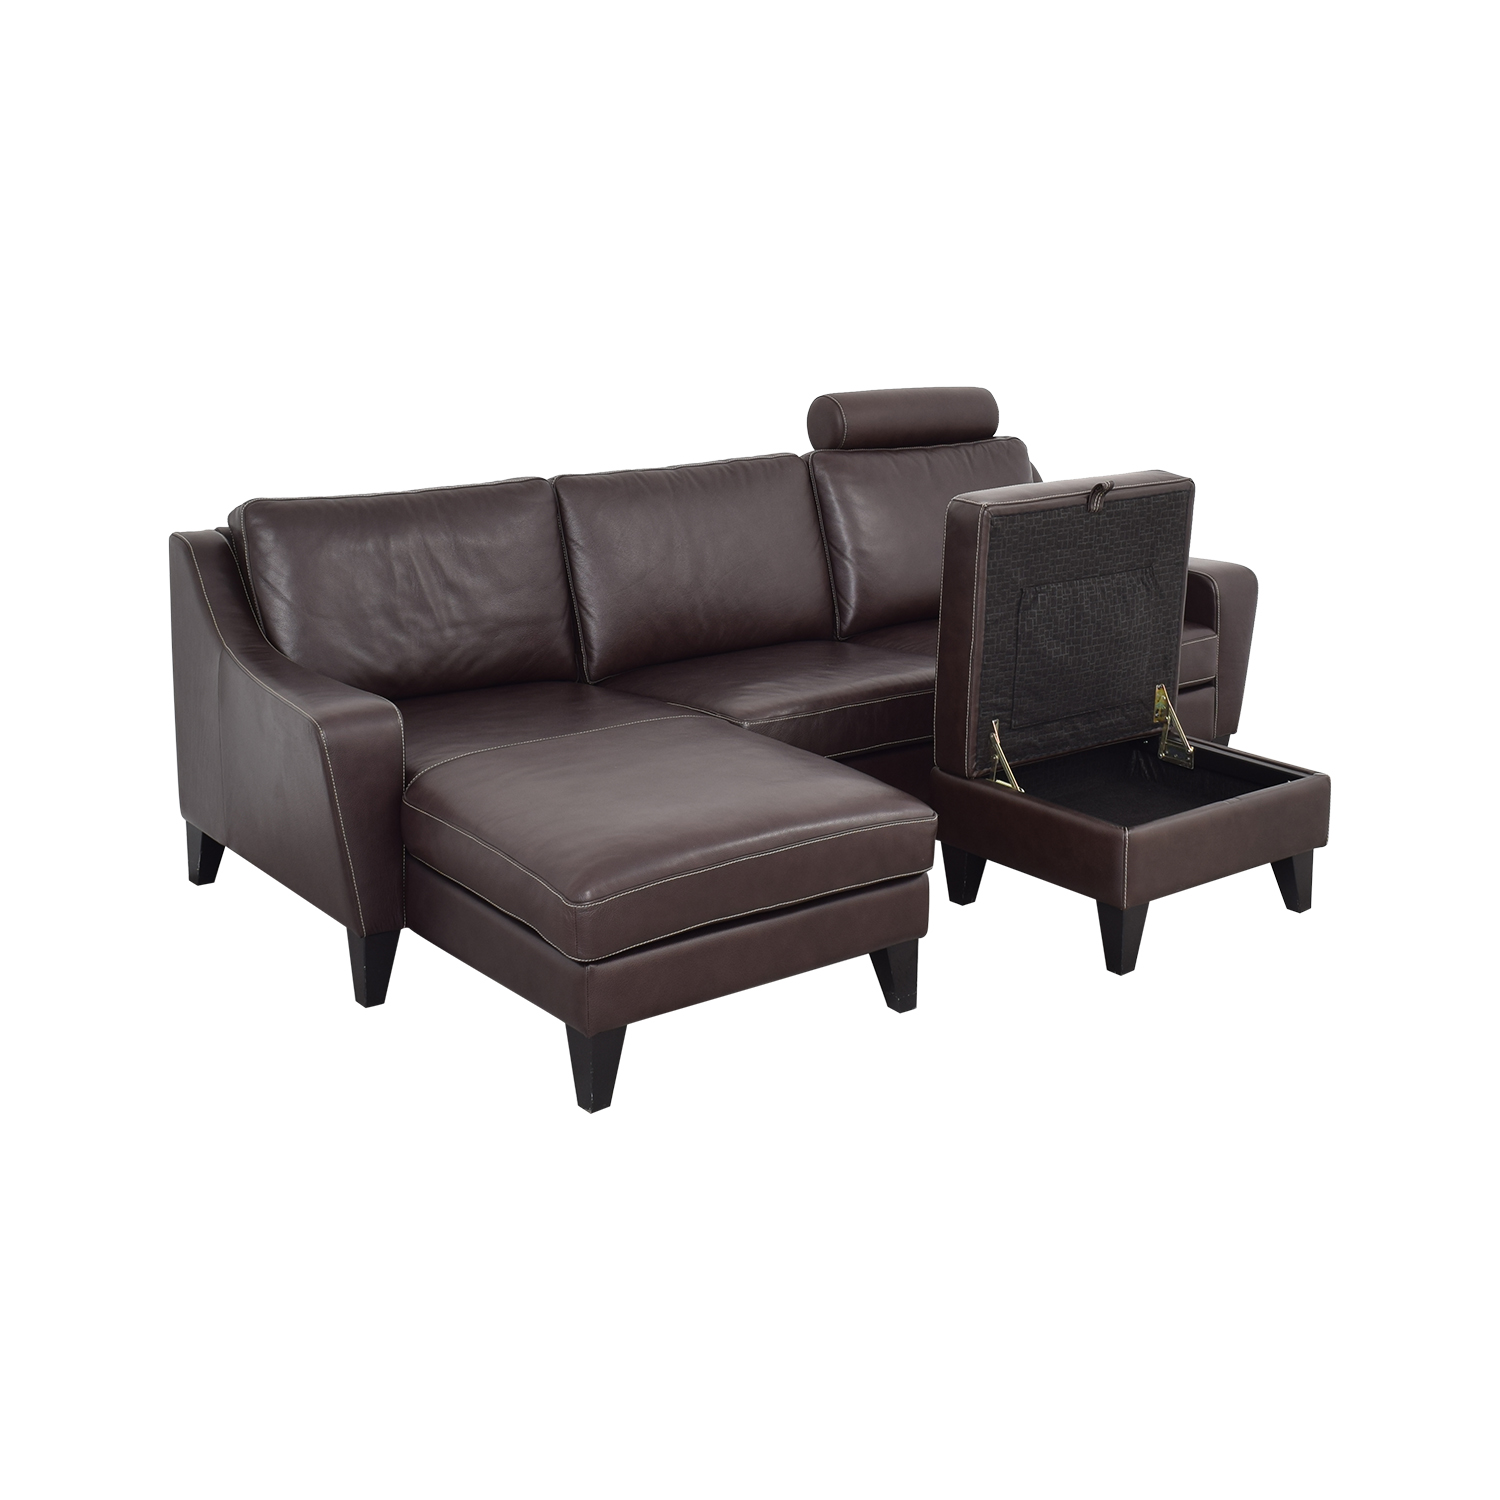 Lind Lind Chaise Sofa with Headrest and Ottoman discount